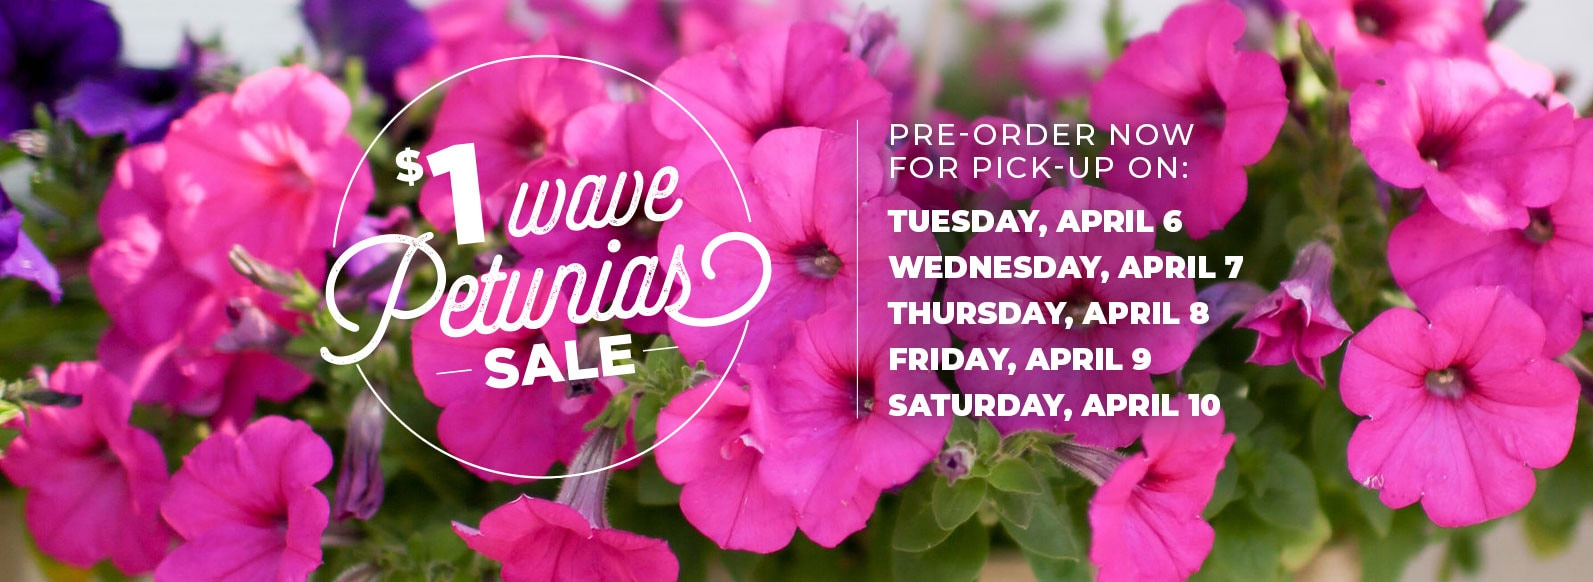 $1 Wave Petunias Sale:  Pre-order now for pickup on Tuesday April 6, Wednesday April 7, Thursday April 8, Friday April 9, or Saturday April 10.